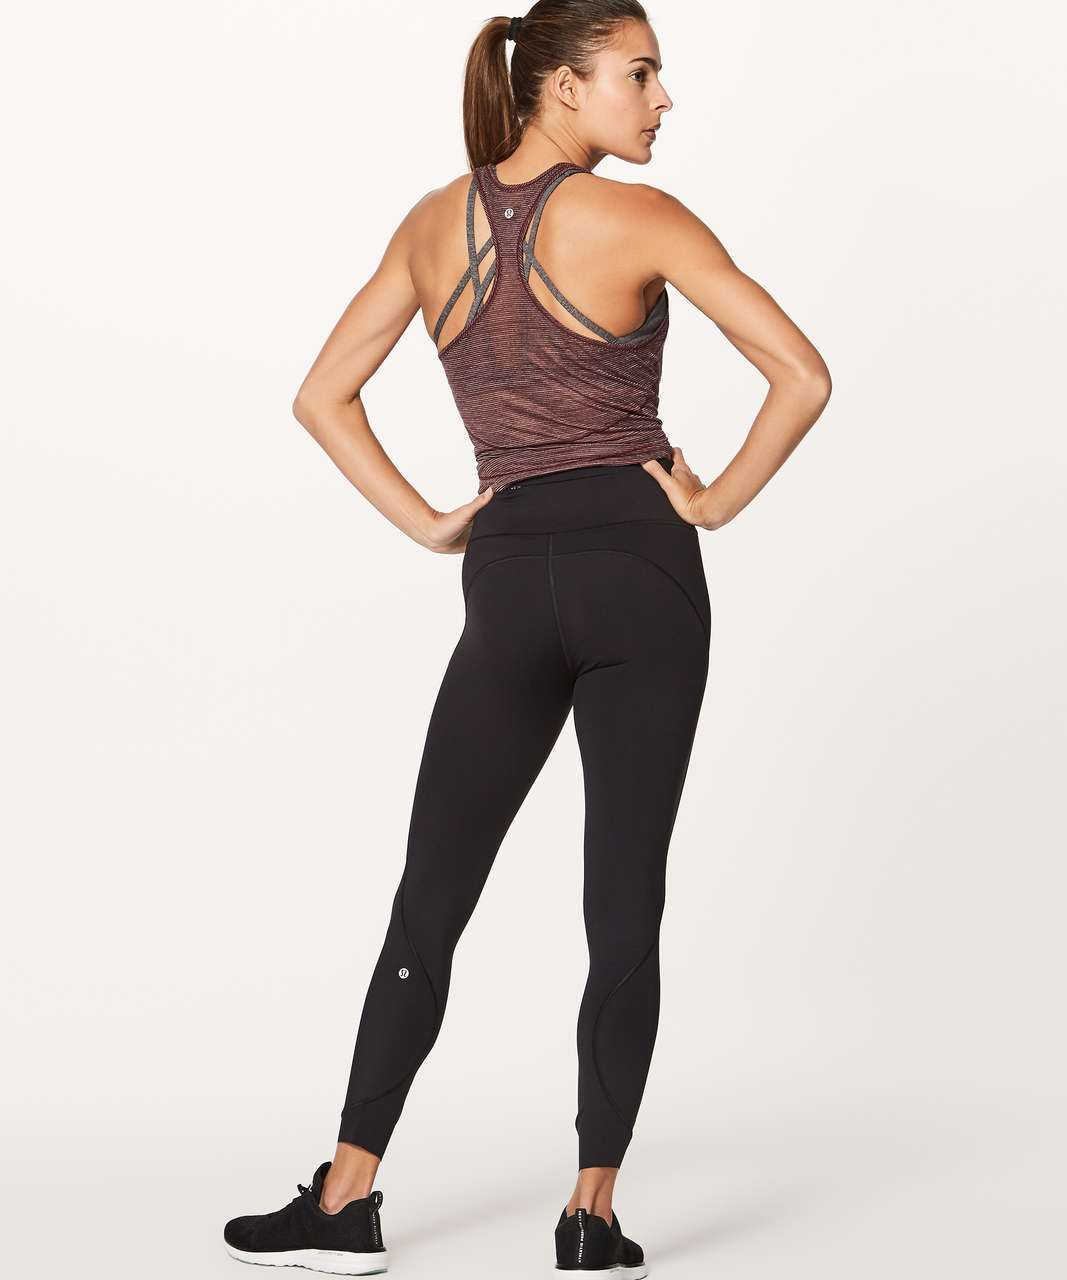 f717fa6c53 Lululemon Run The Day 7 8 Tight (25